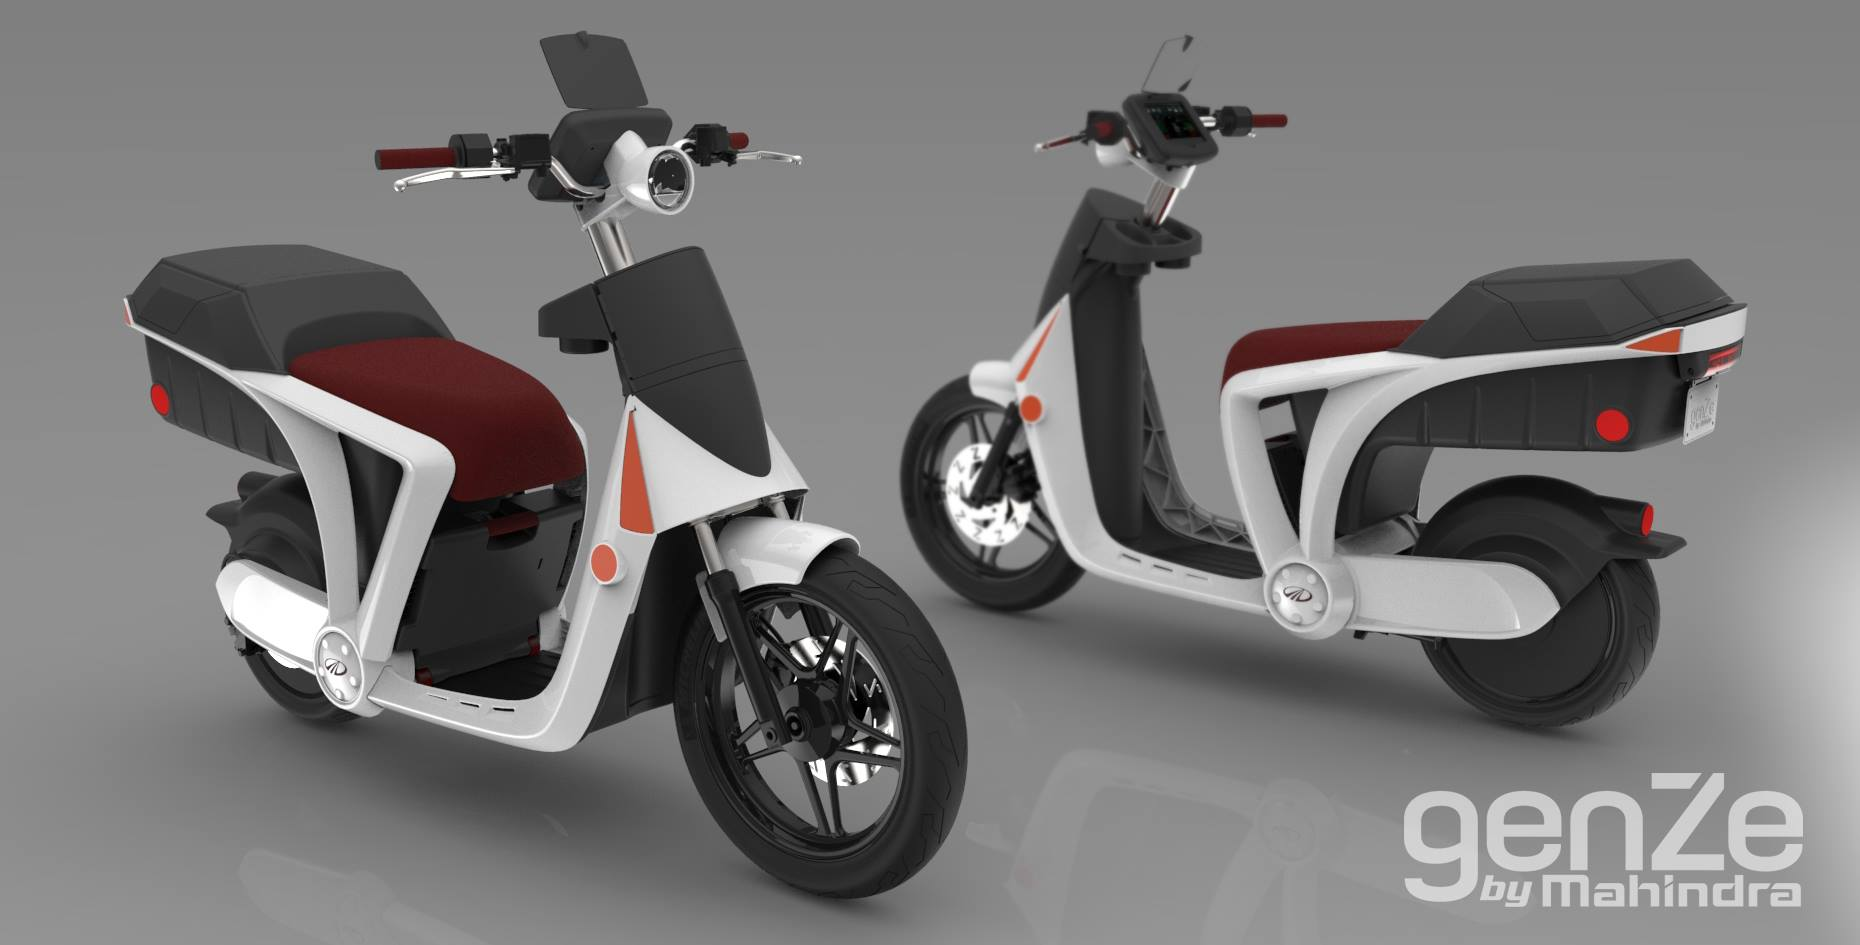 genze by mahindra scooters